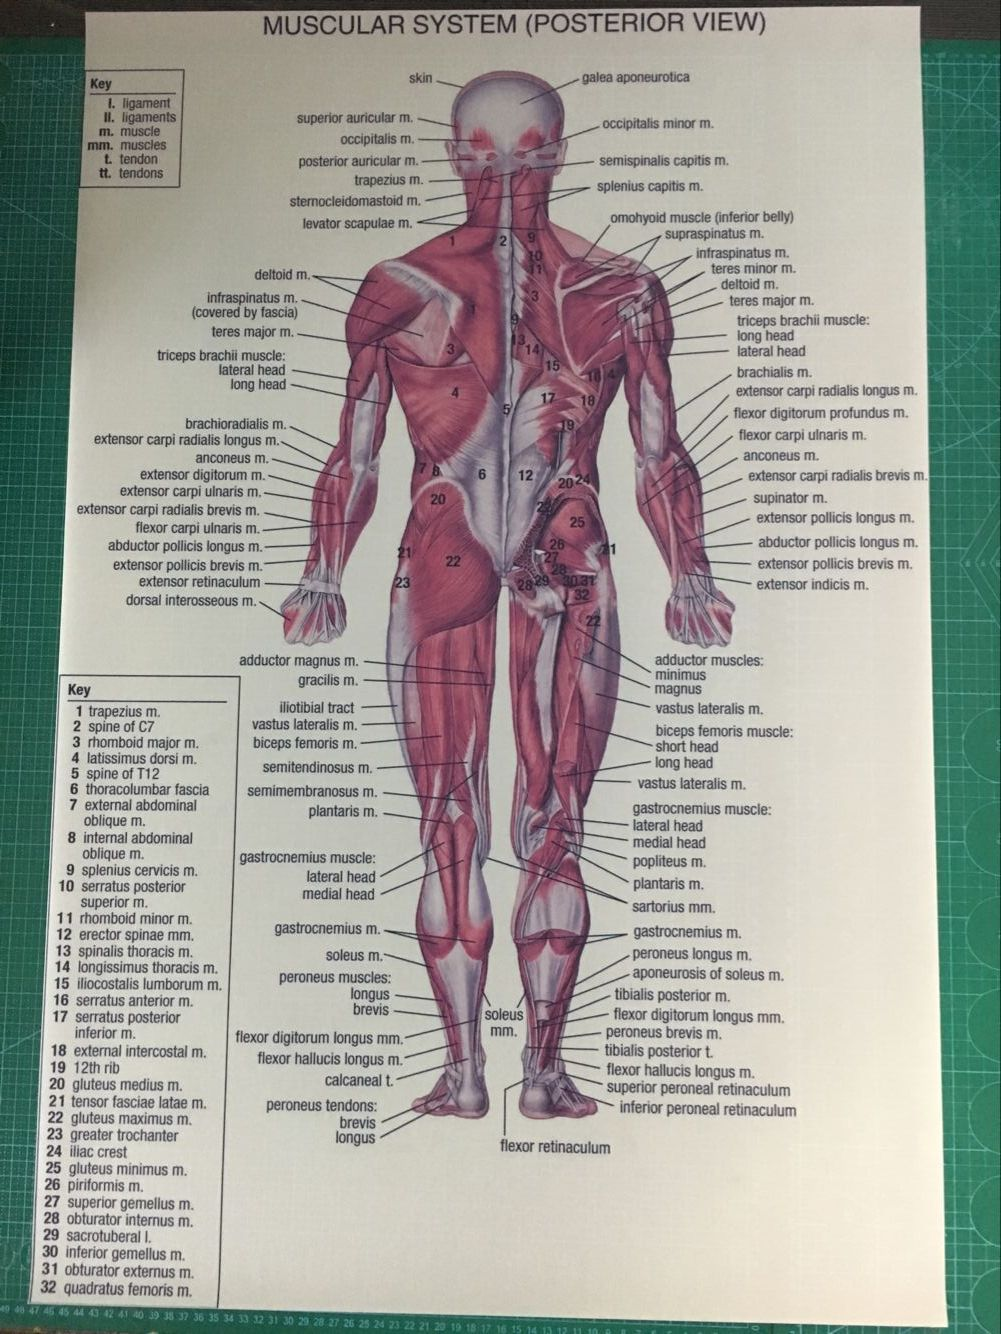 Human Anatomy posterior anterior view anatomy Muscles System Art ...